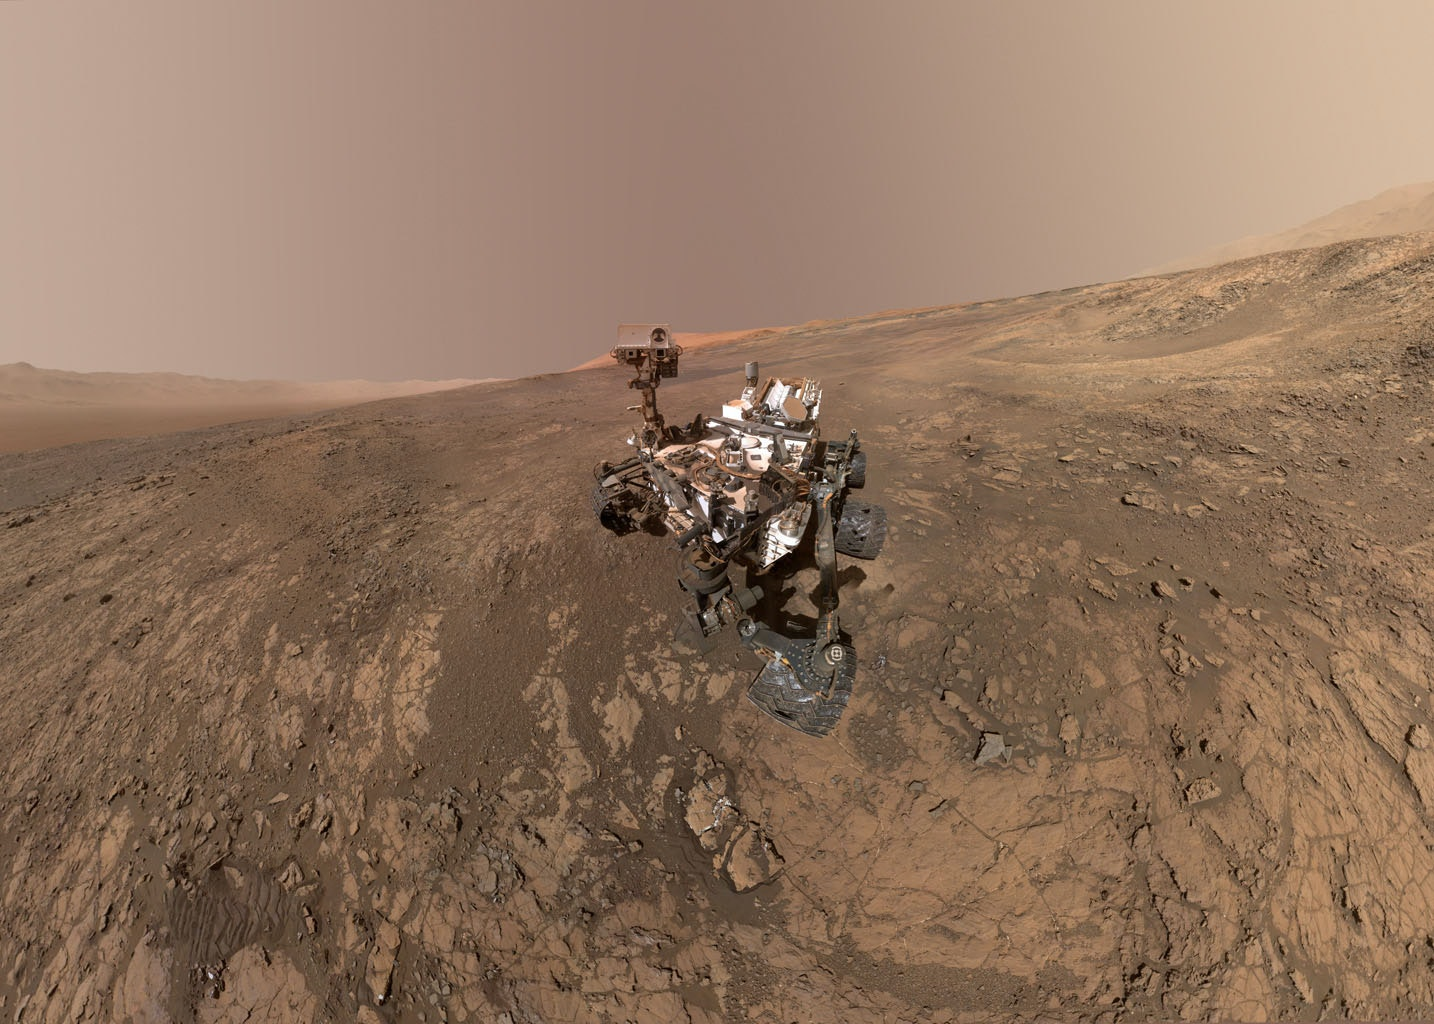 A dried tree was discovered on Mars